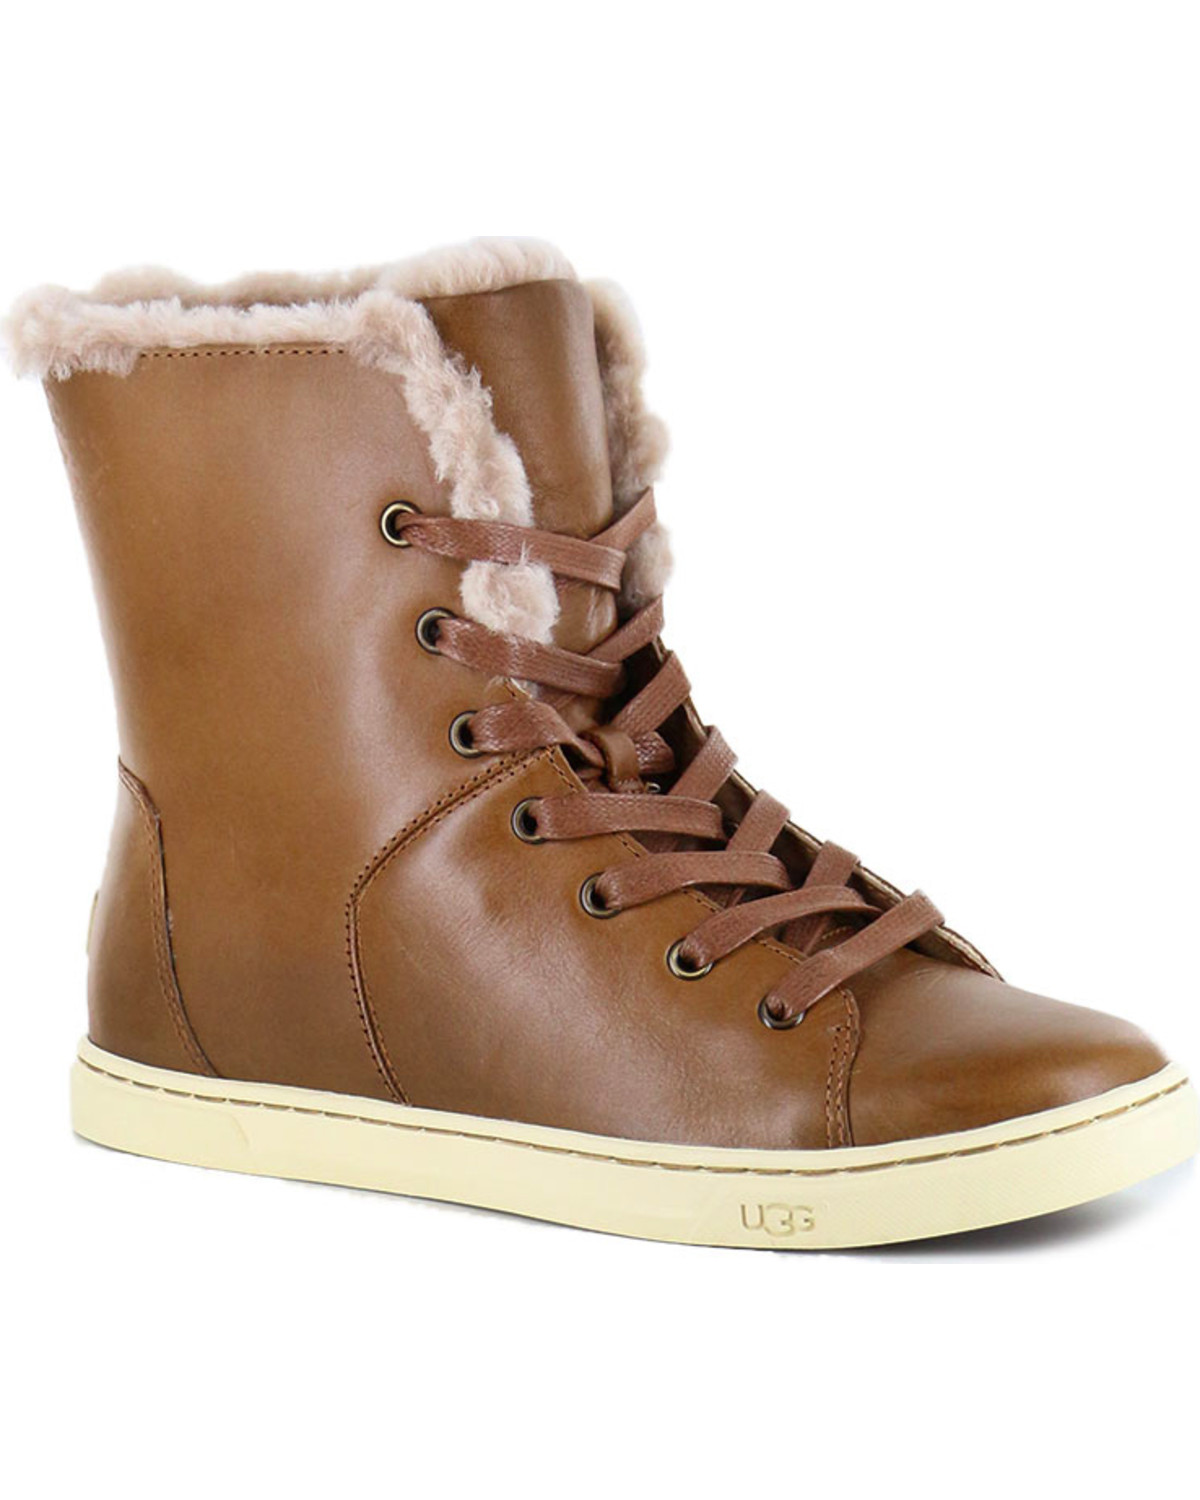 874833dd468 UGG® Women's Croft Luxe Quilt Shoes